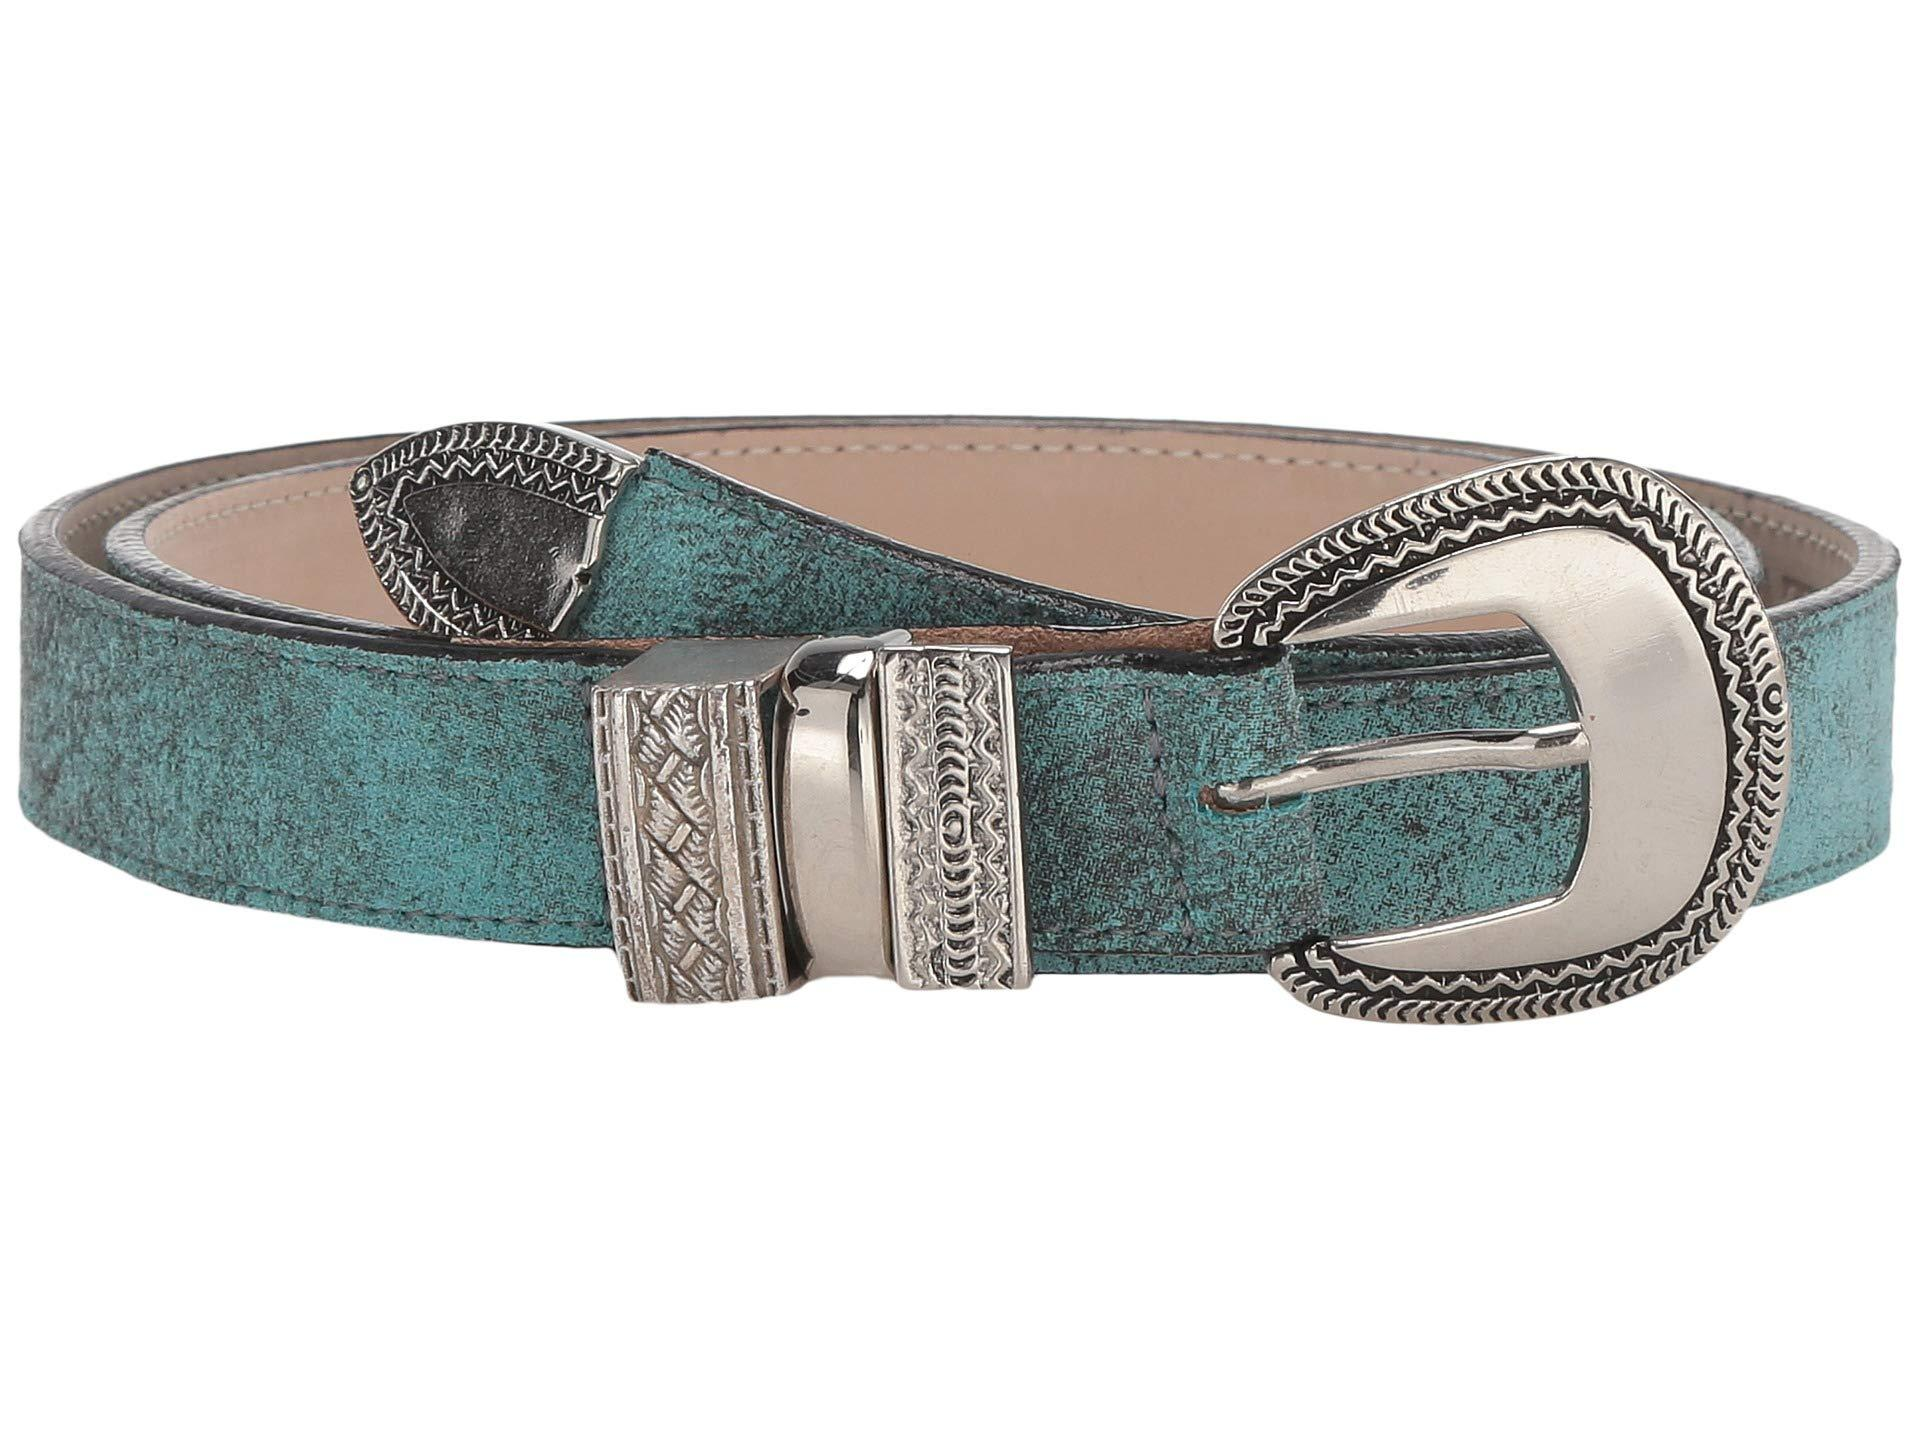 08bbb6db9 Leatherock Brandi Belt (turquoise) Women's Belts in Blue - Lyst